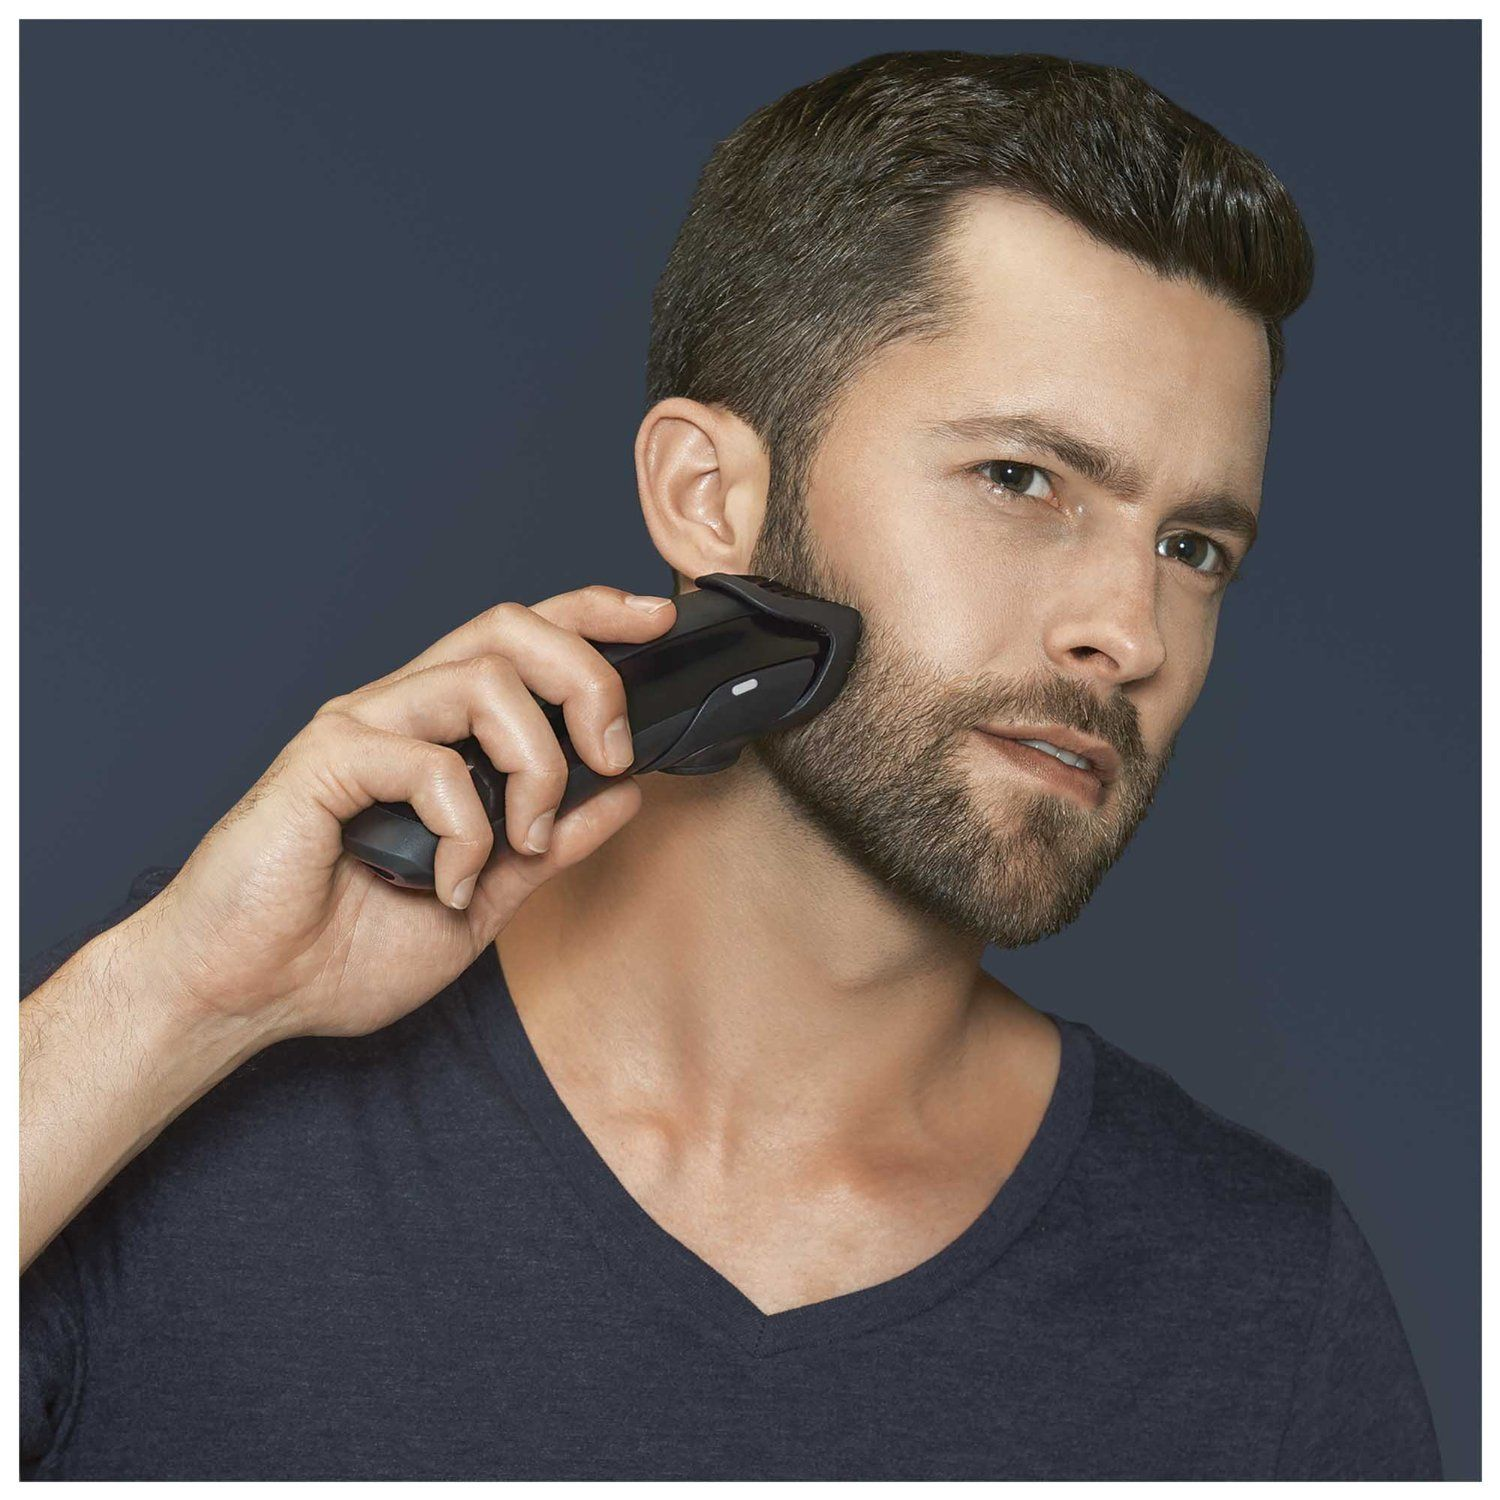 braun bt5050 cordless and rechargeable beard trimmer review. Black Bedroom Furniture Sets. Home Design Ideas